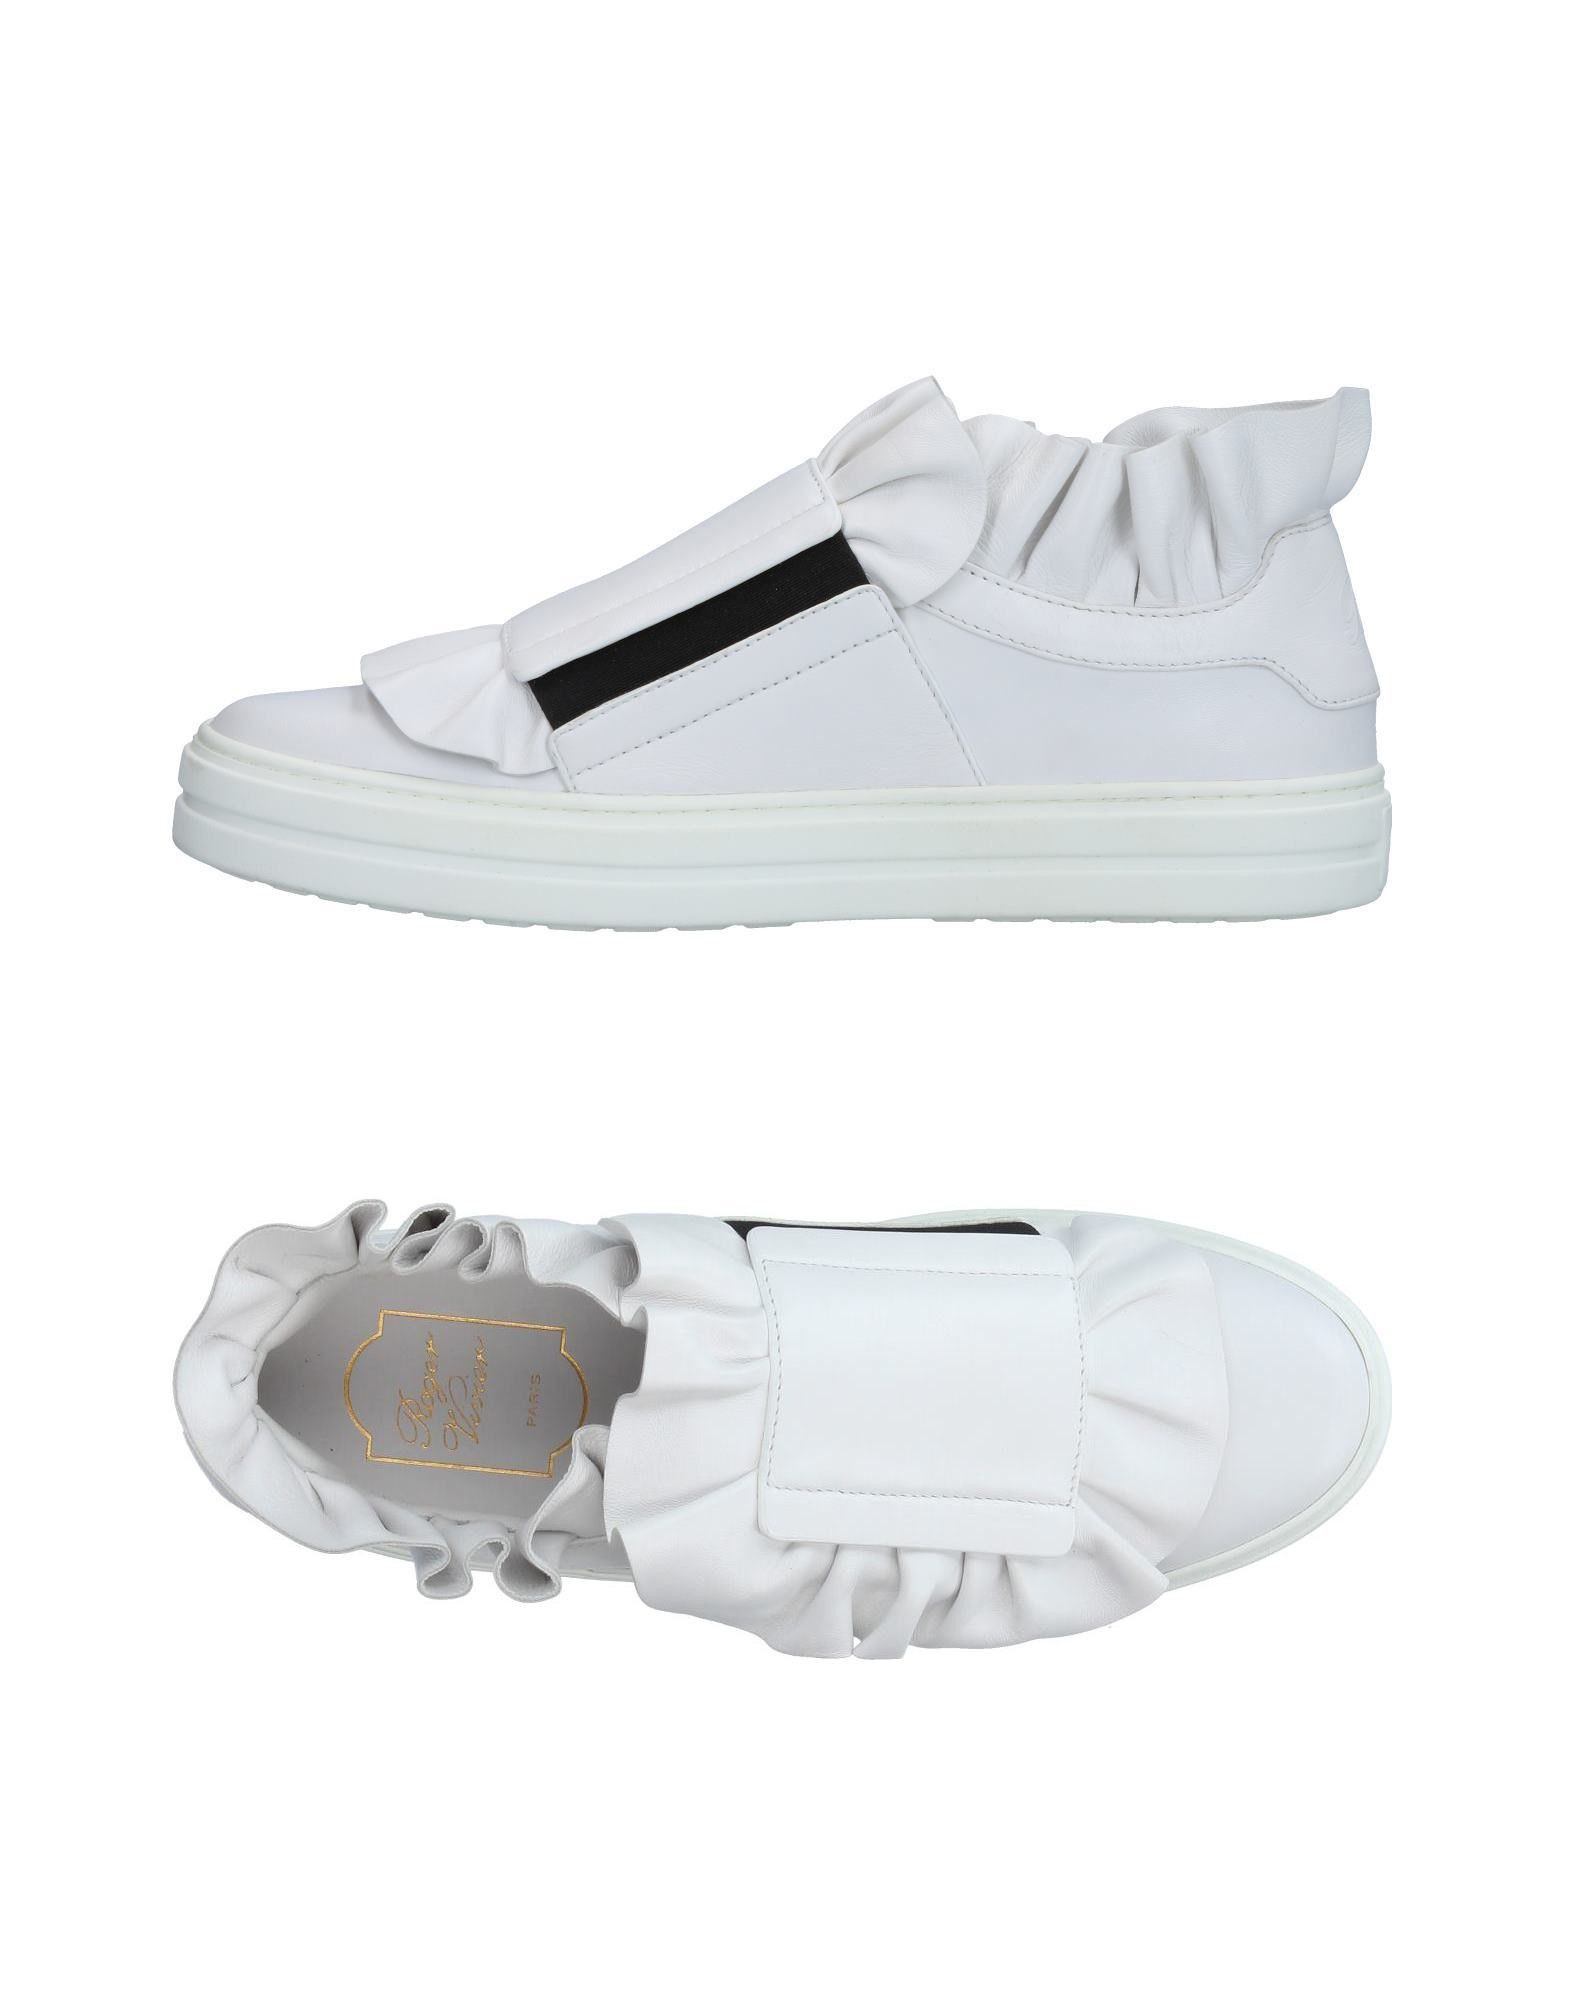 ROGER VIVIER Sneakers. no appliqués, solid color, zip, round toeline, flat, leather lining, rubber cleated sole, contains non-textile parts of animal origin. Soft Leather